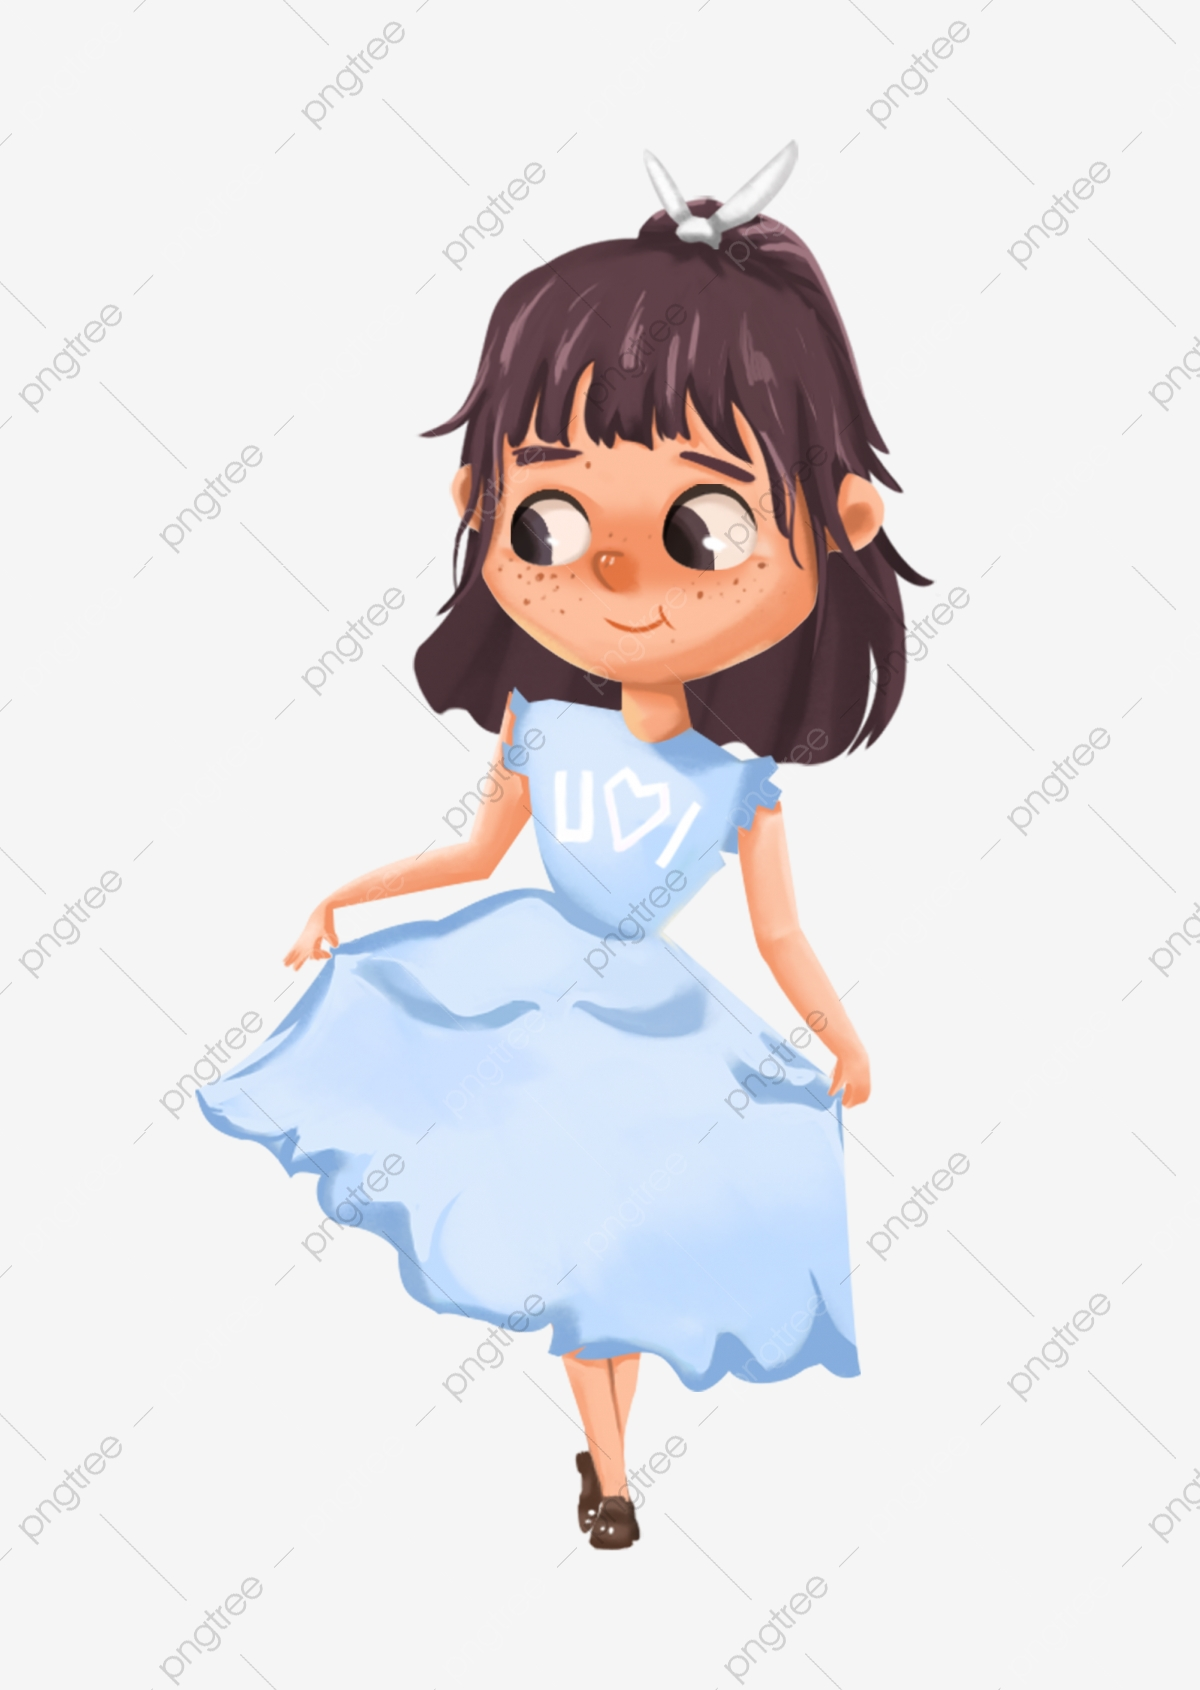 Little Girl Cute Little Girl Big Eyes Little Girl Elegant Little Girl Cute And Elegant Beautiful Little Girl Little Girl Png Transparent Clipart Image And Psd File For Free Download